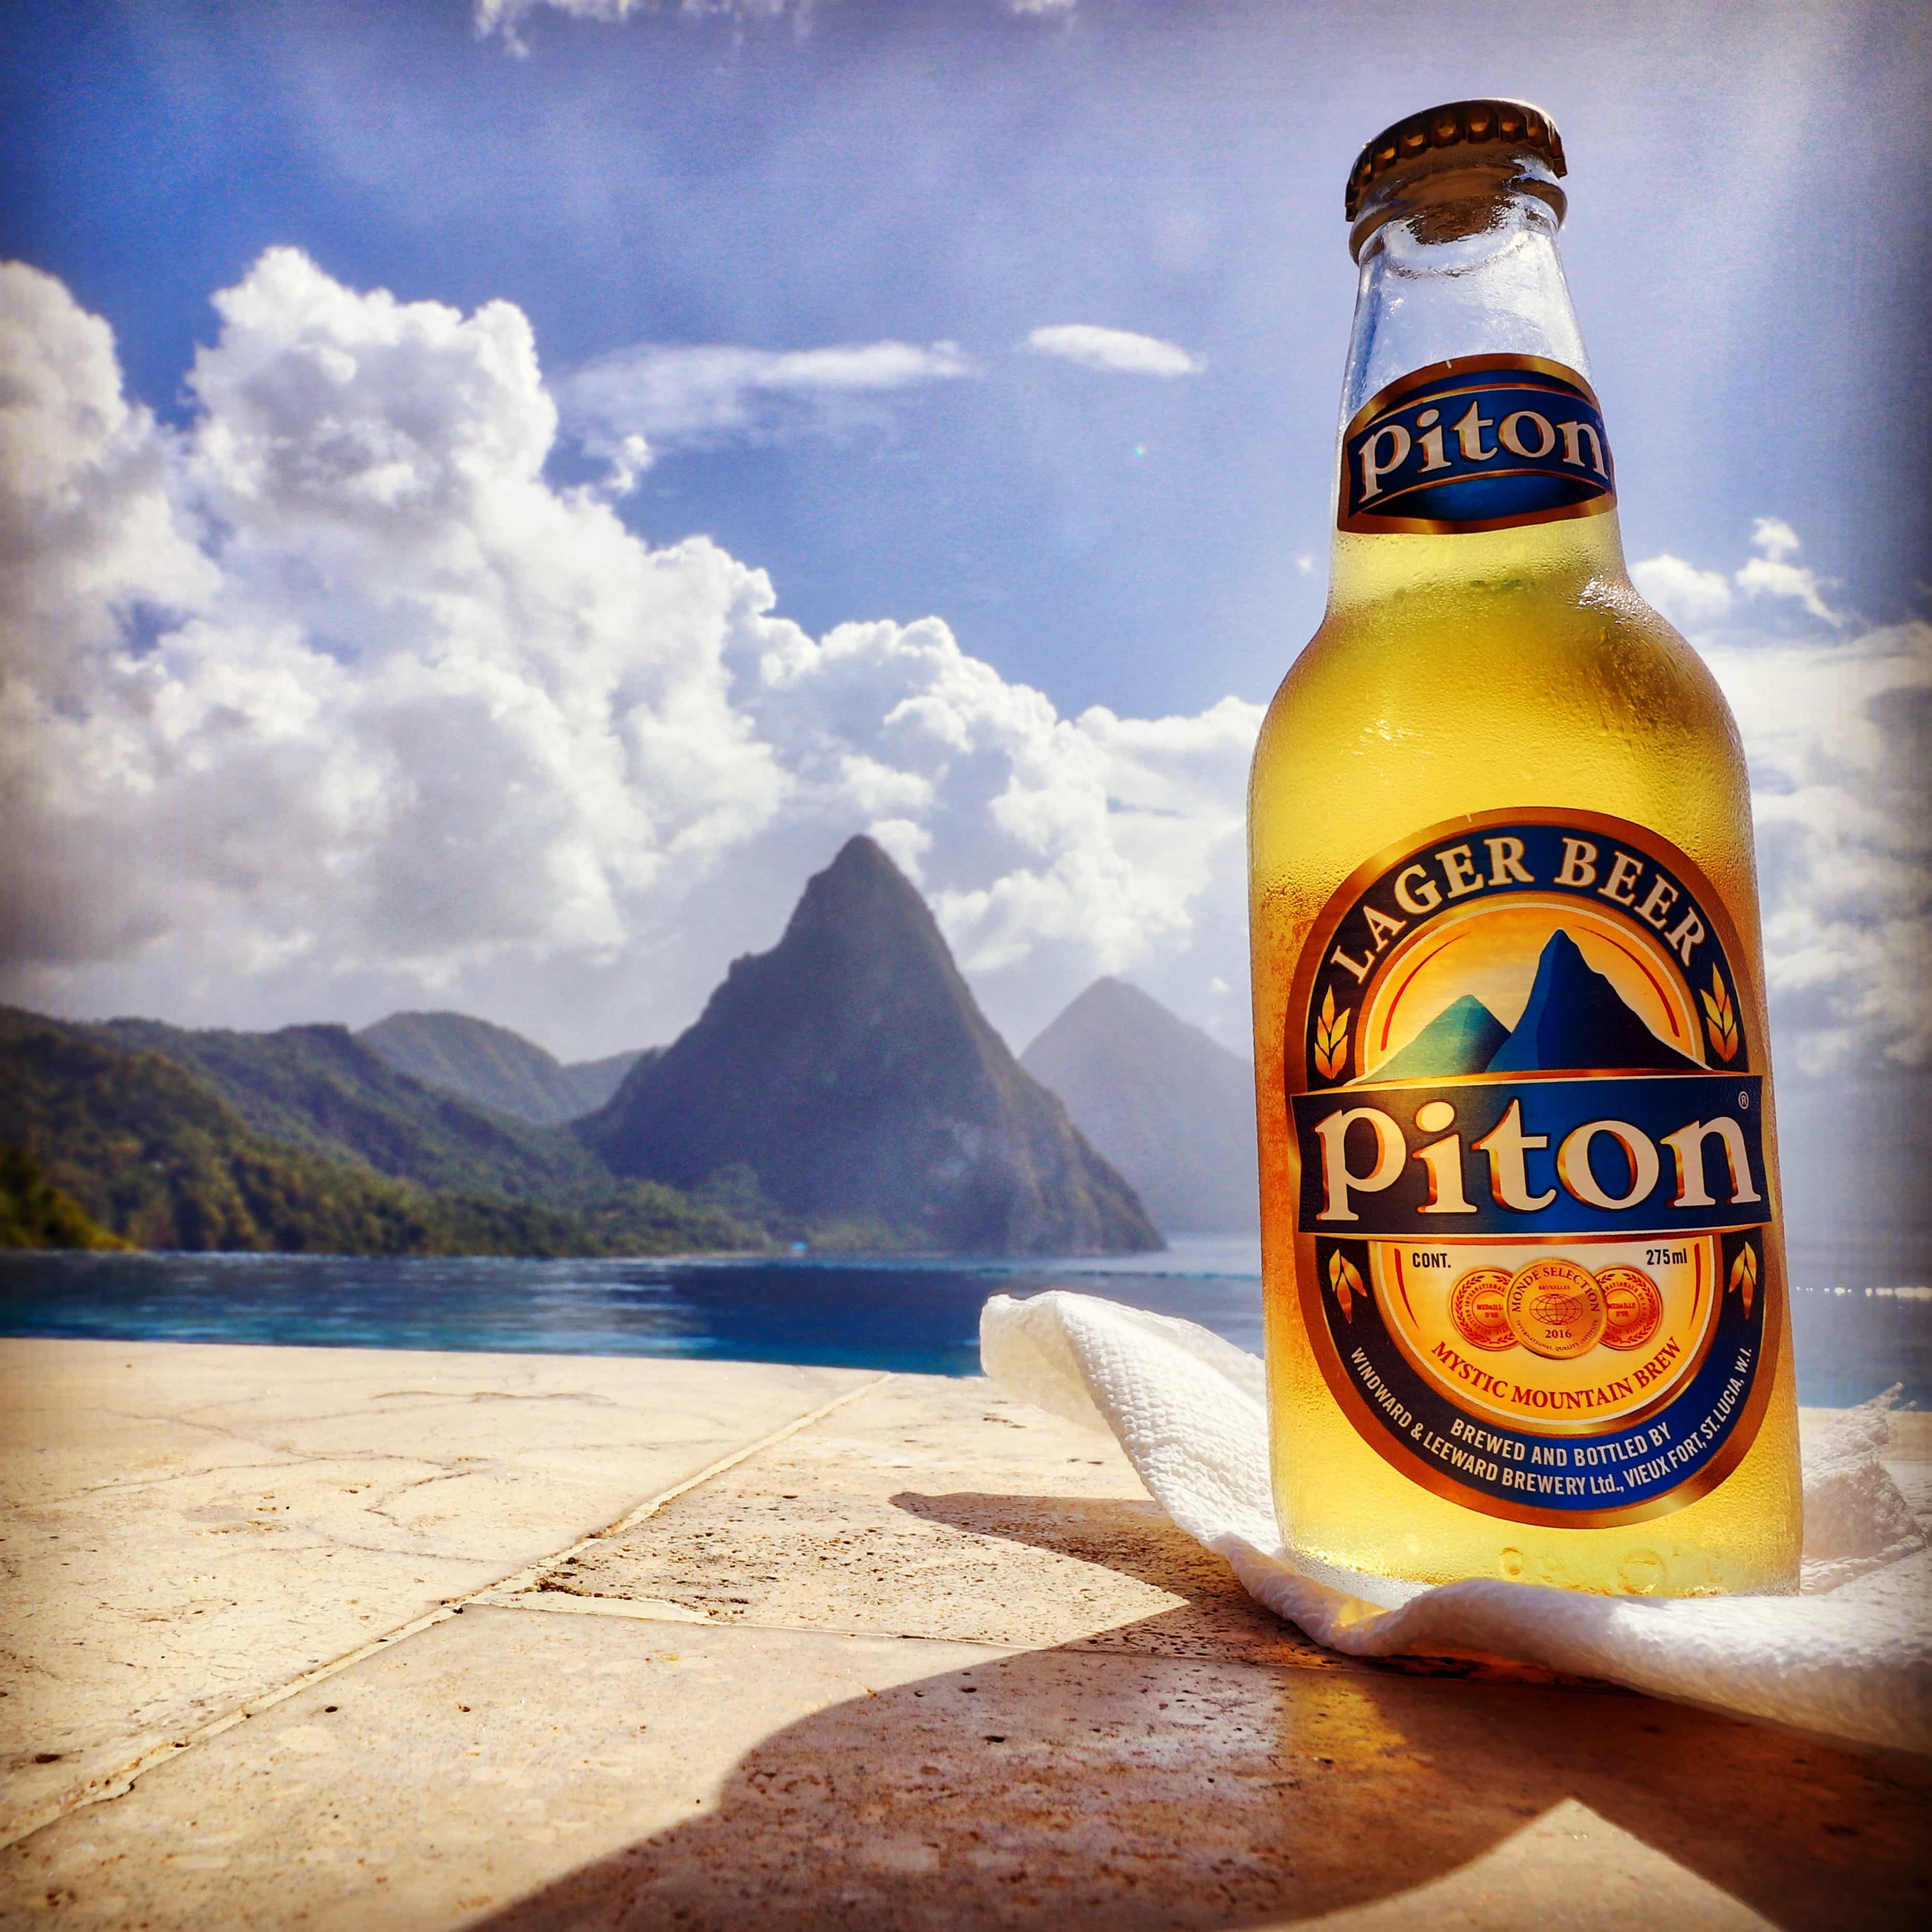 Piton Lager Beer Caille Blanc Villa St. Lucia Infinity Pool